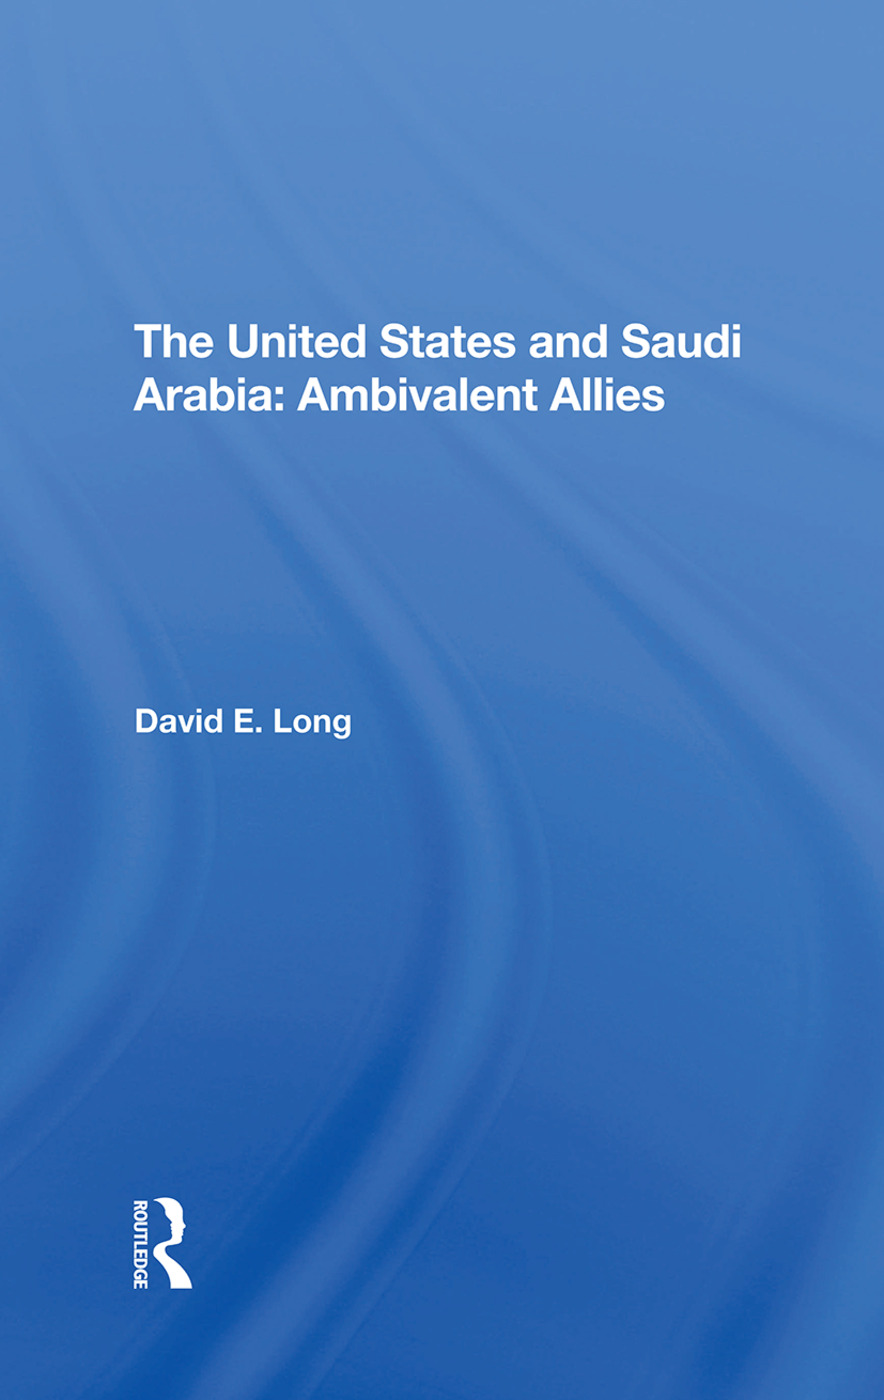 The United States And Saudi Arabia: Ambivalent Allies book cover